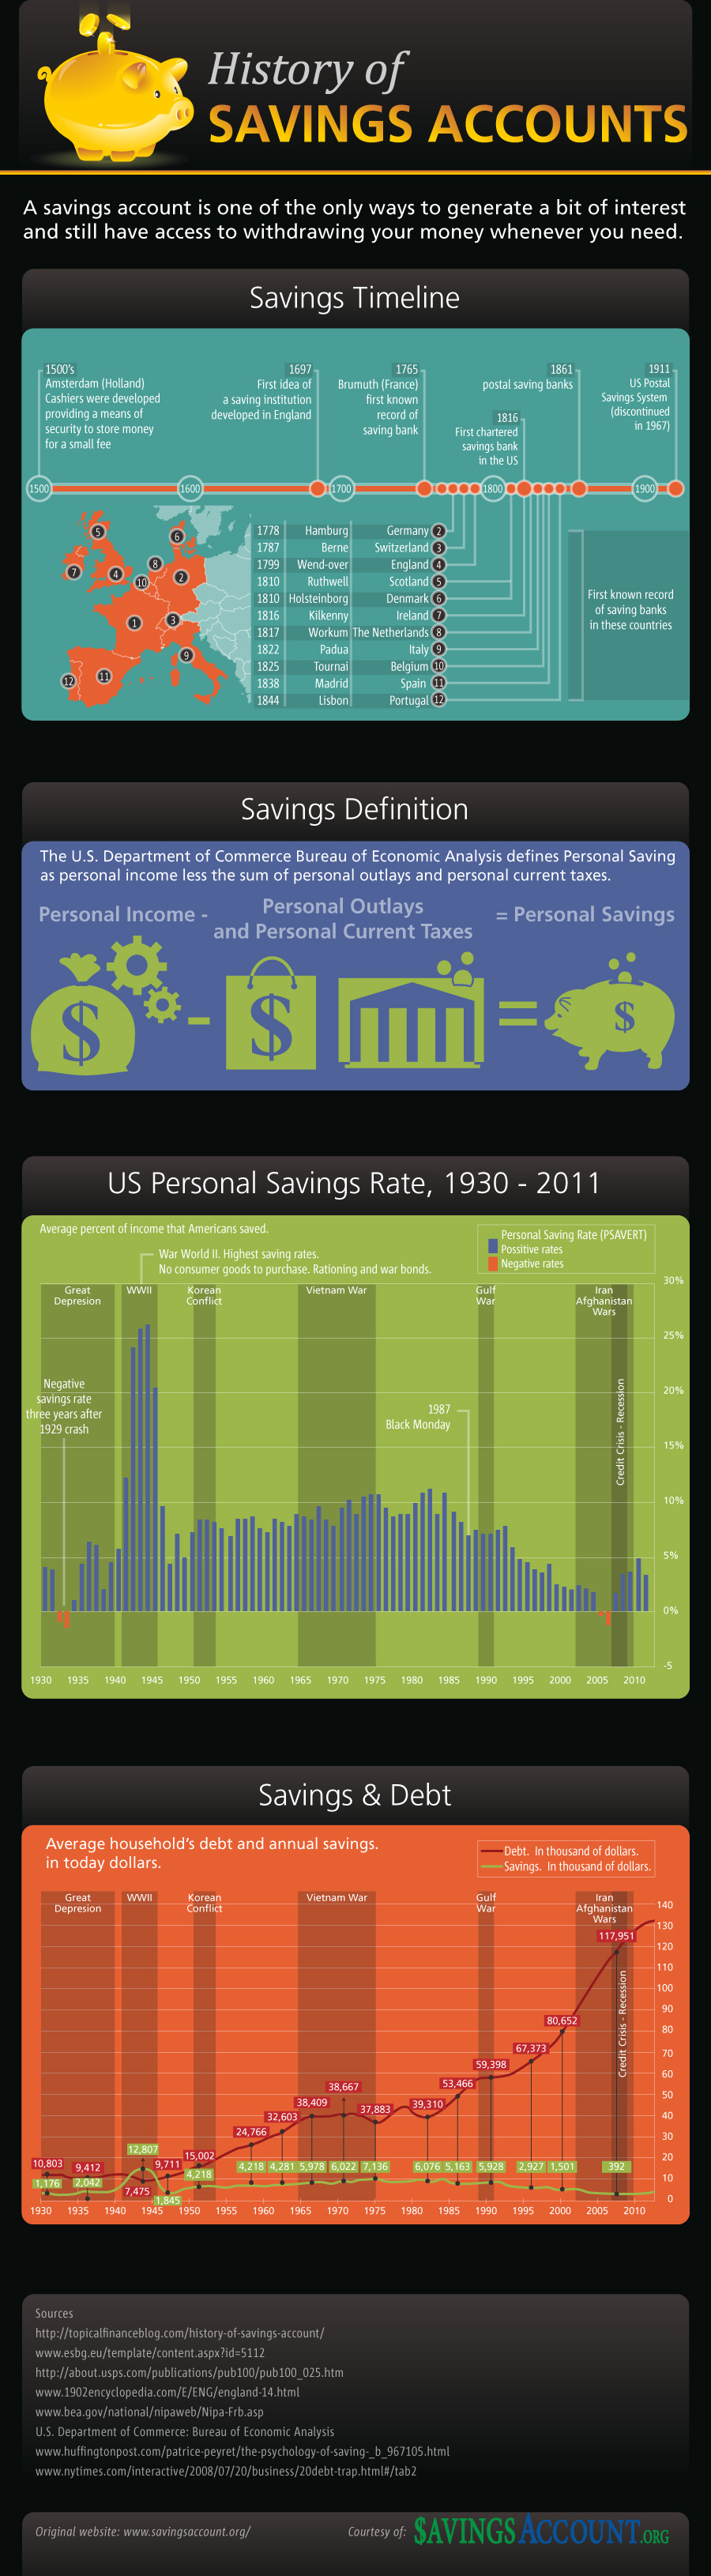 History of Savings Accounts